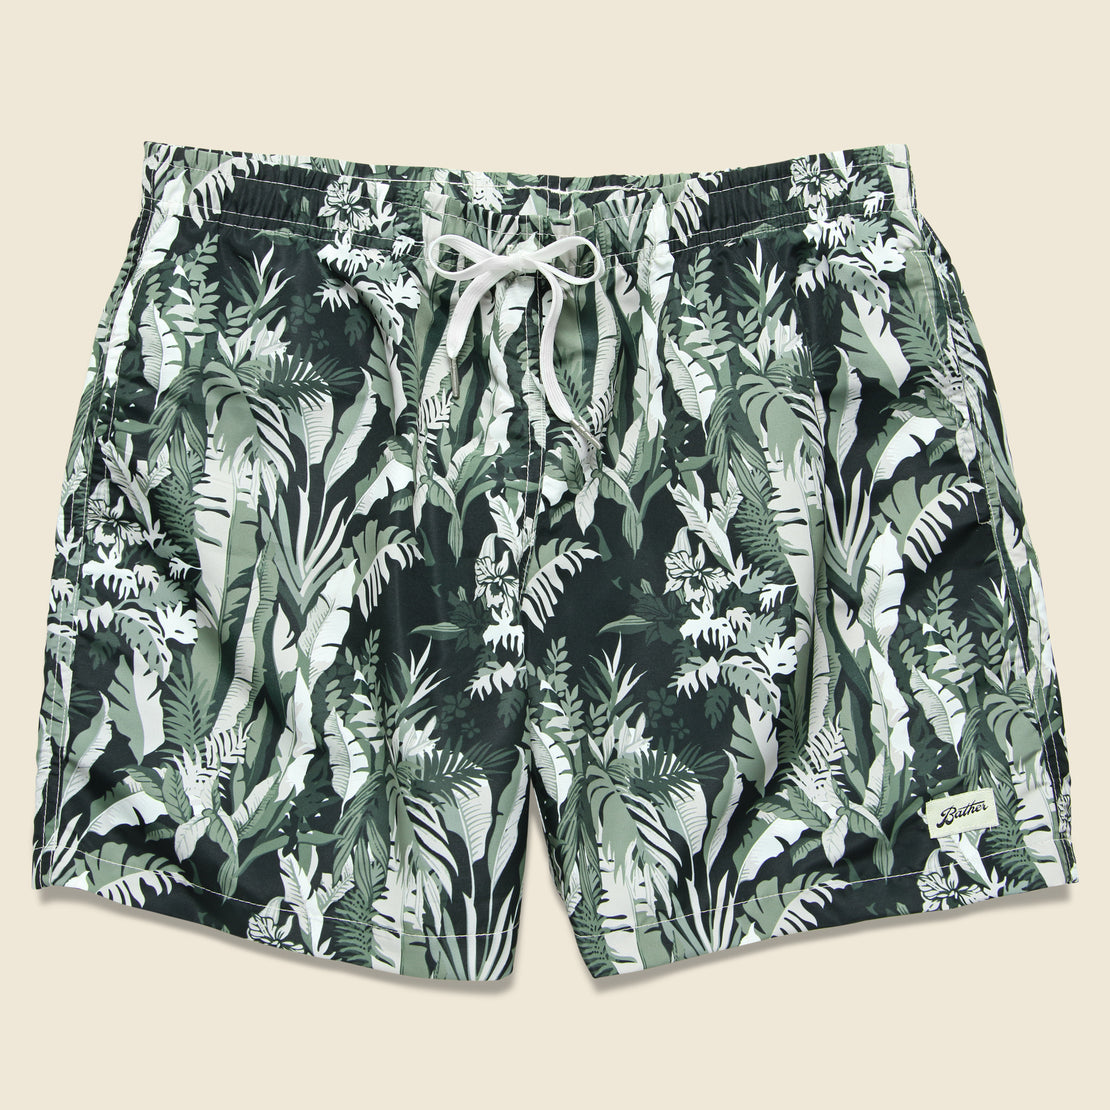 Bather Trunk Co. Tropical Forest Swim Trunk - Green